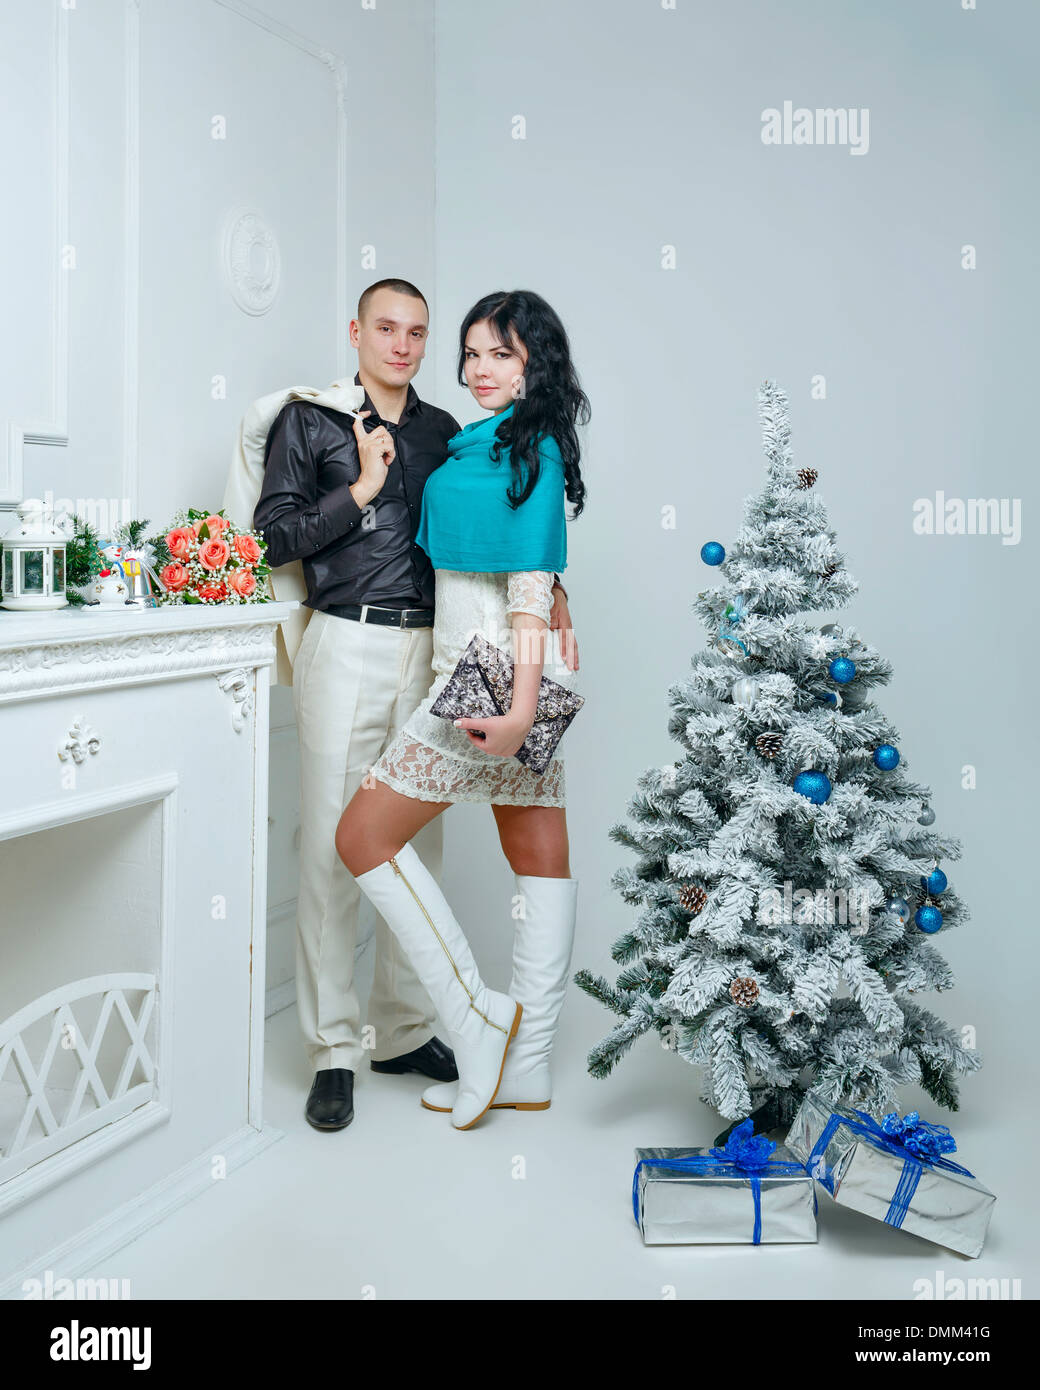 young loving married couple near christmas tree with gifts stock image